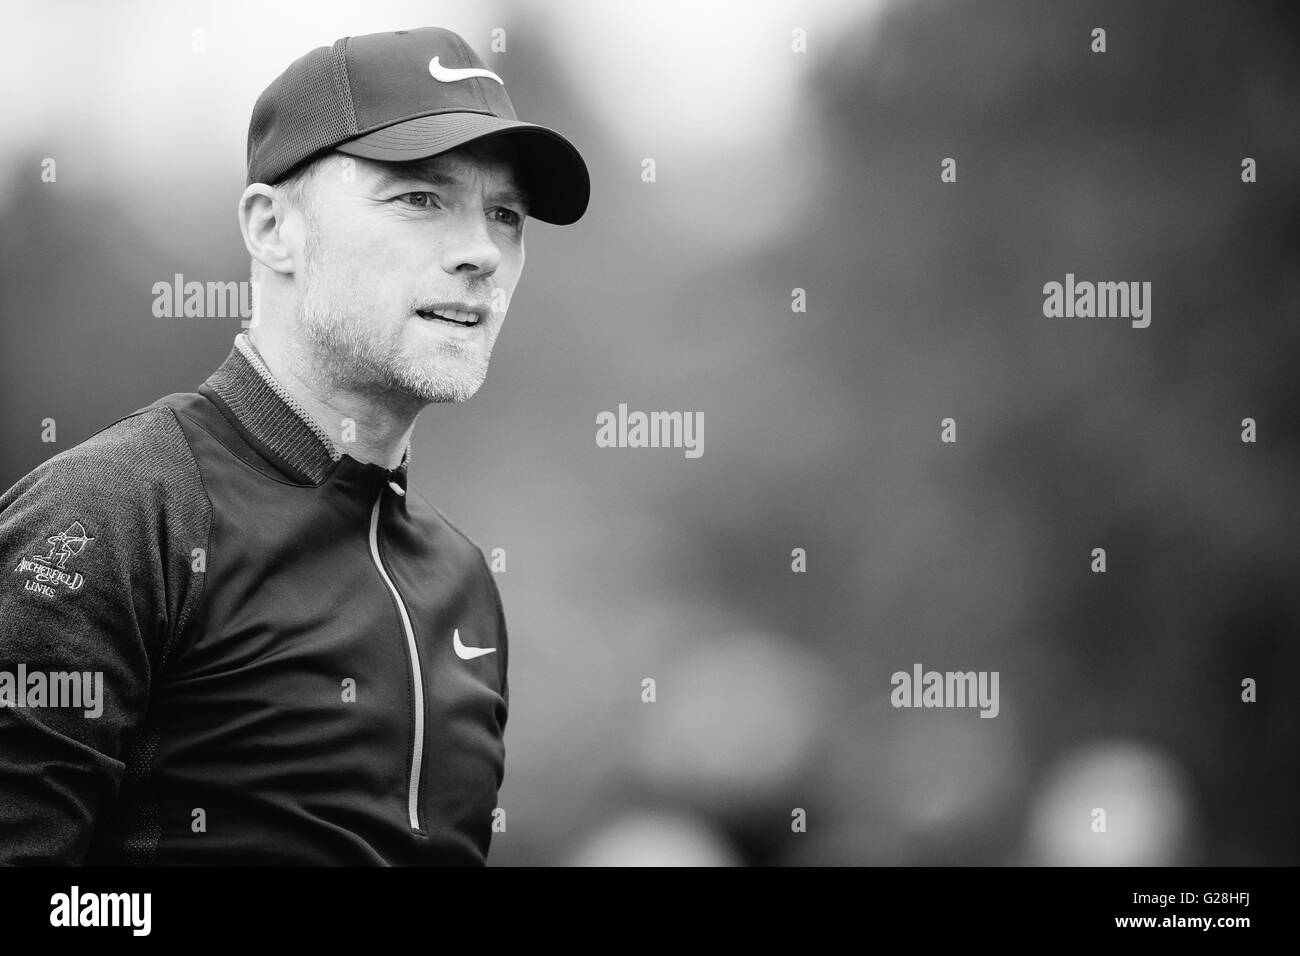 WENTWORTH, UK: May, 25, 2016 Ronan Keating plays in the BMW PGA Celebrity Pro-Am at Wentworth. - Stock Image